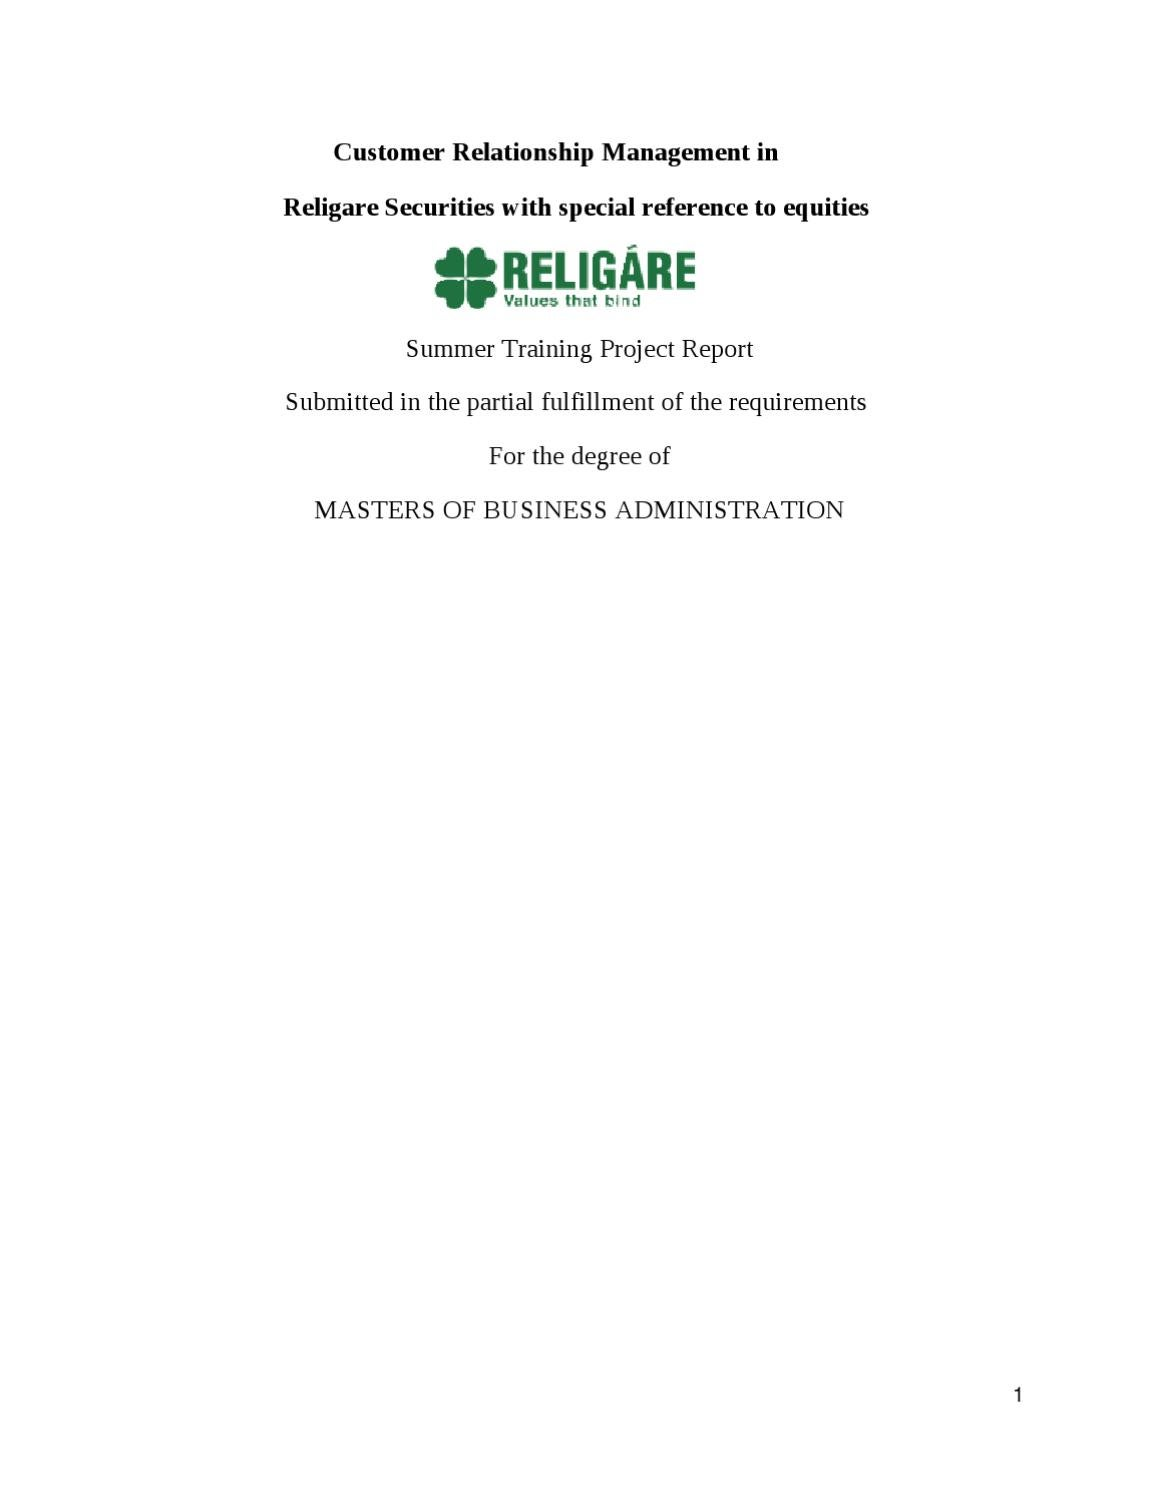 religare project report